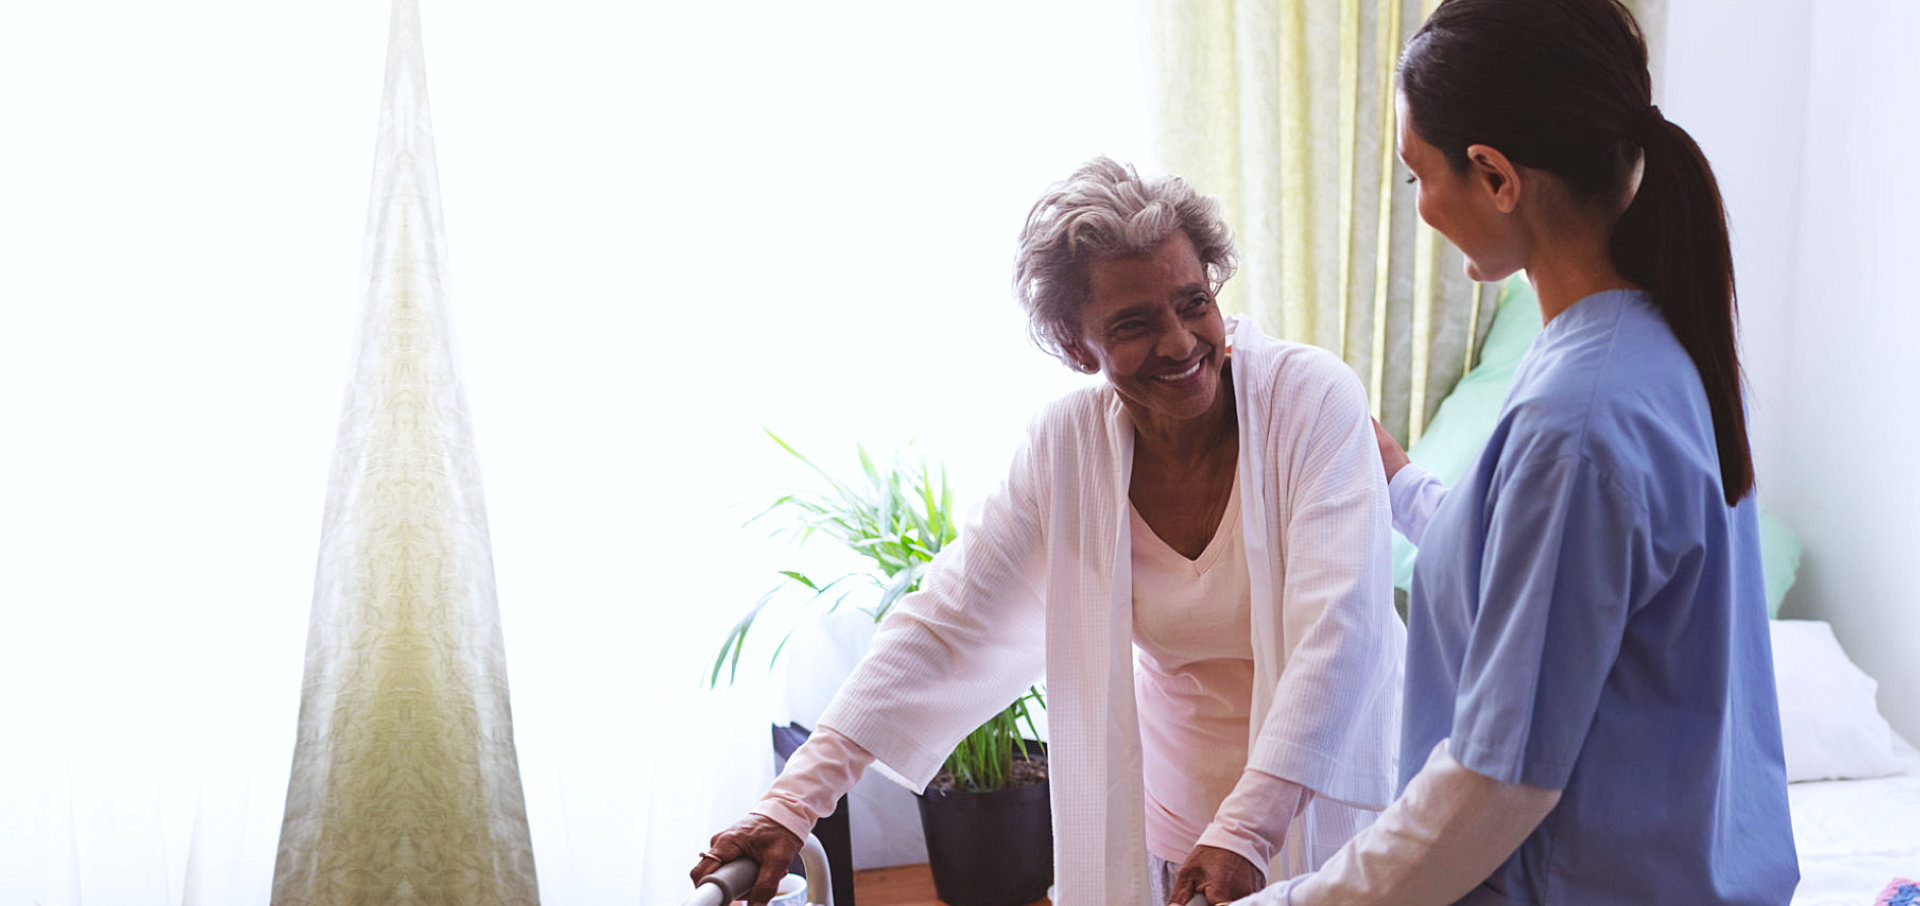 caregiver helping a senior woman